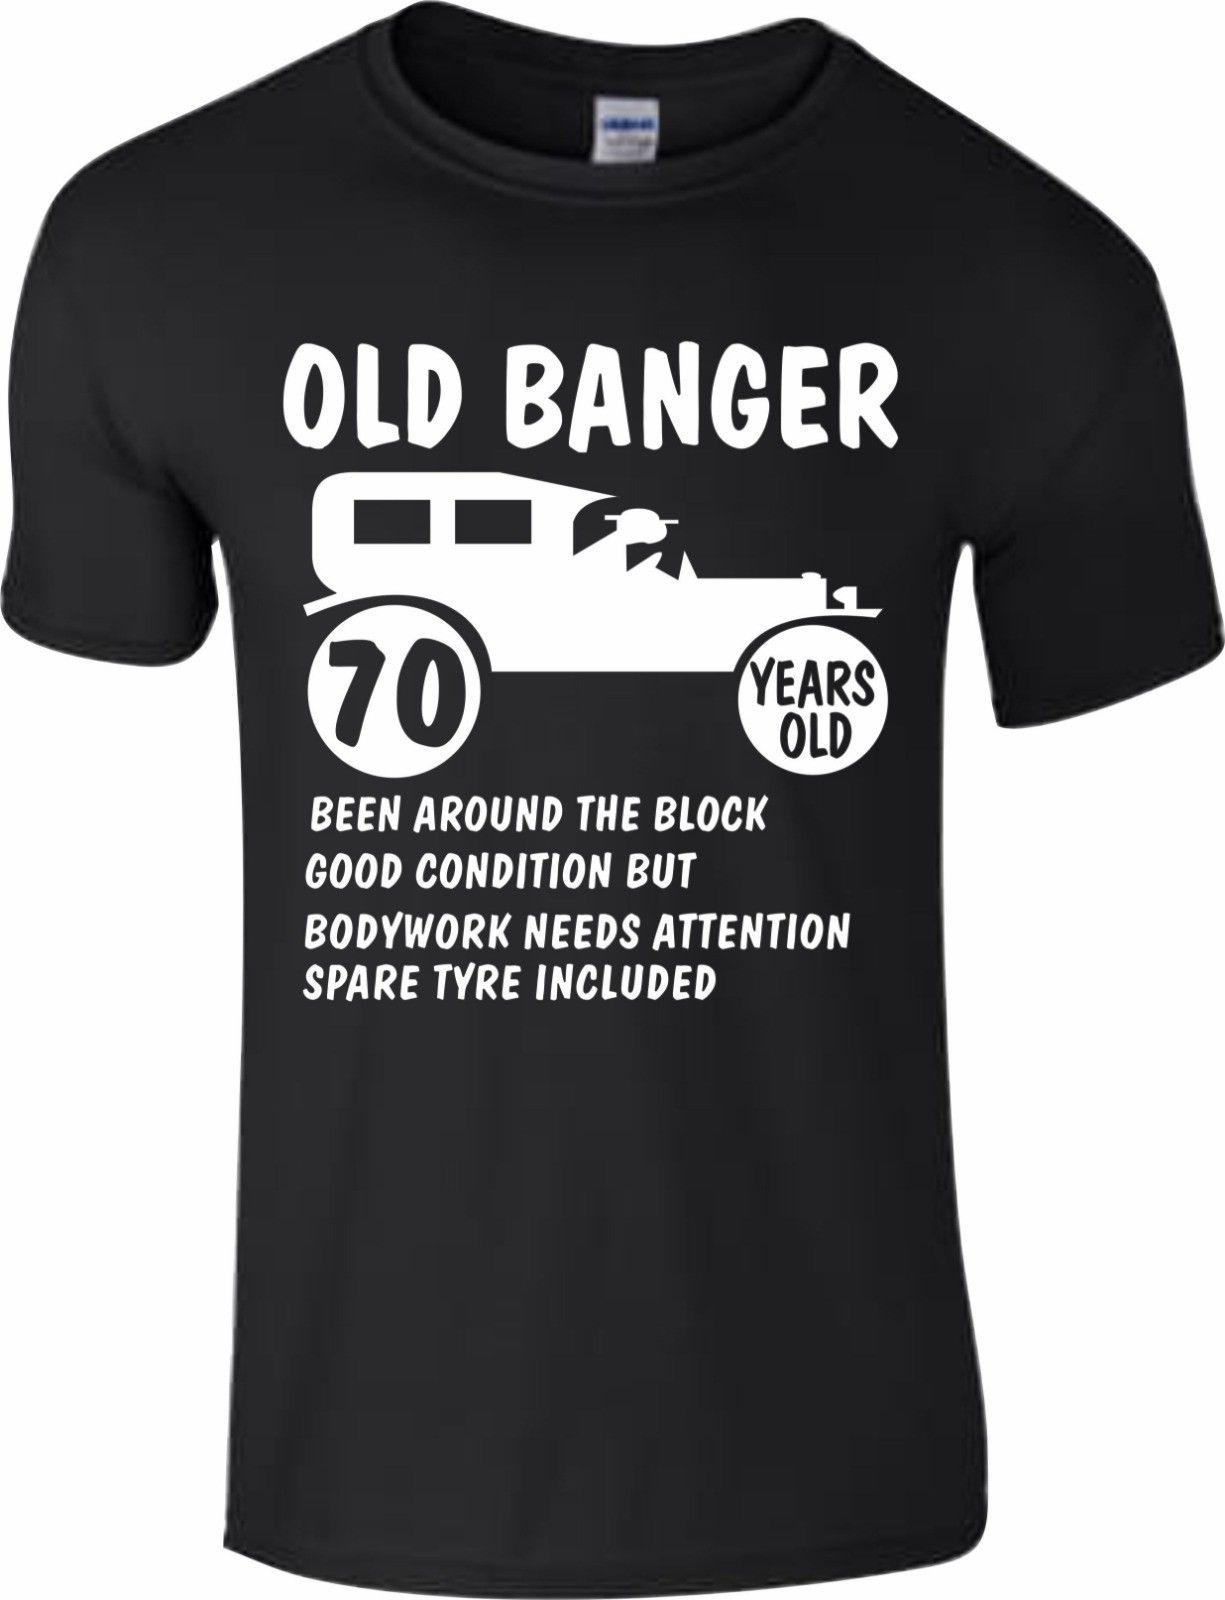 70th Birthday 1948 Age 70 Years Old Banger Present Gift T Shirt Funny Top Shirts For Sale Printed From Yg07tshirt 1205